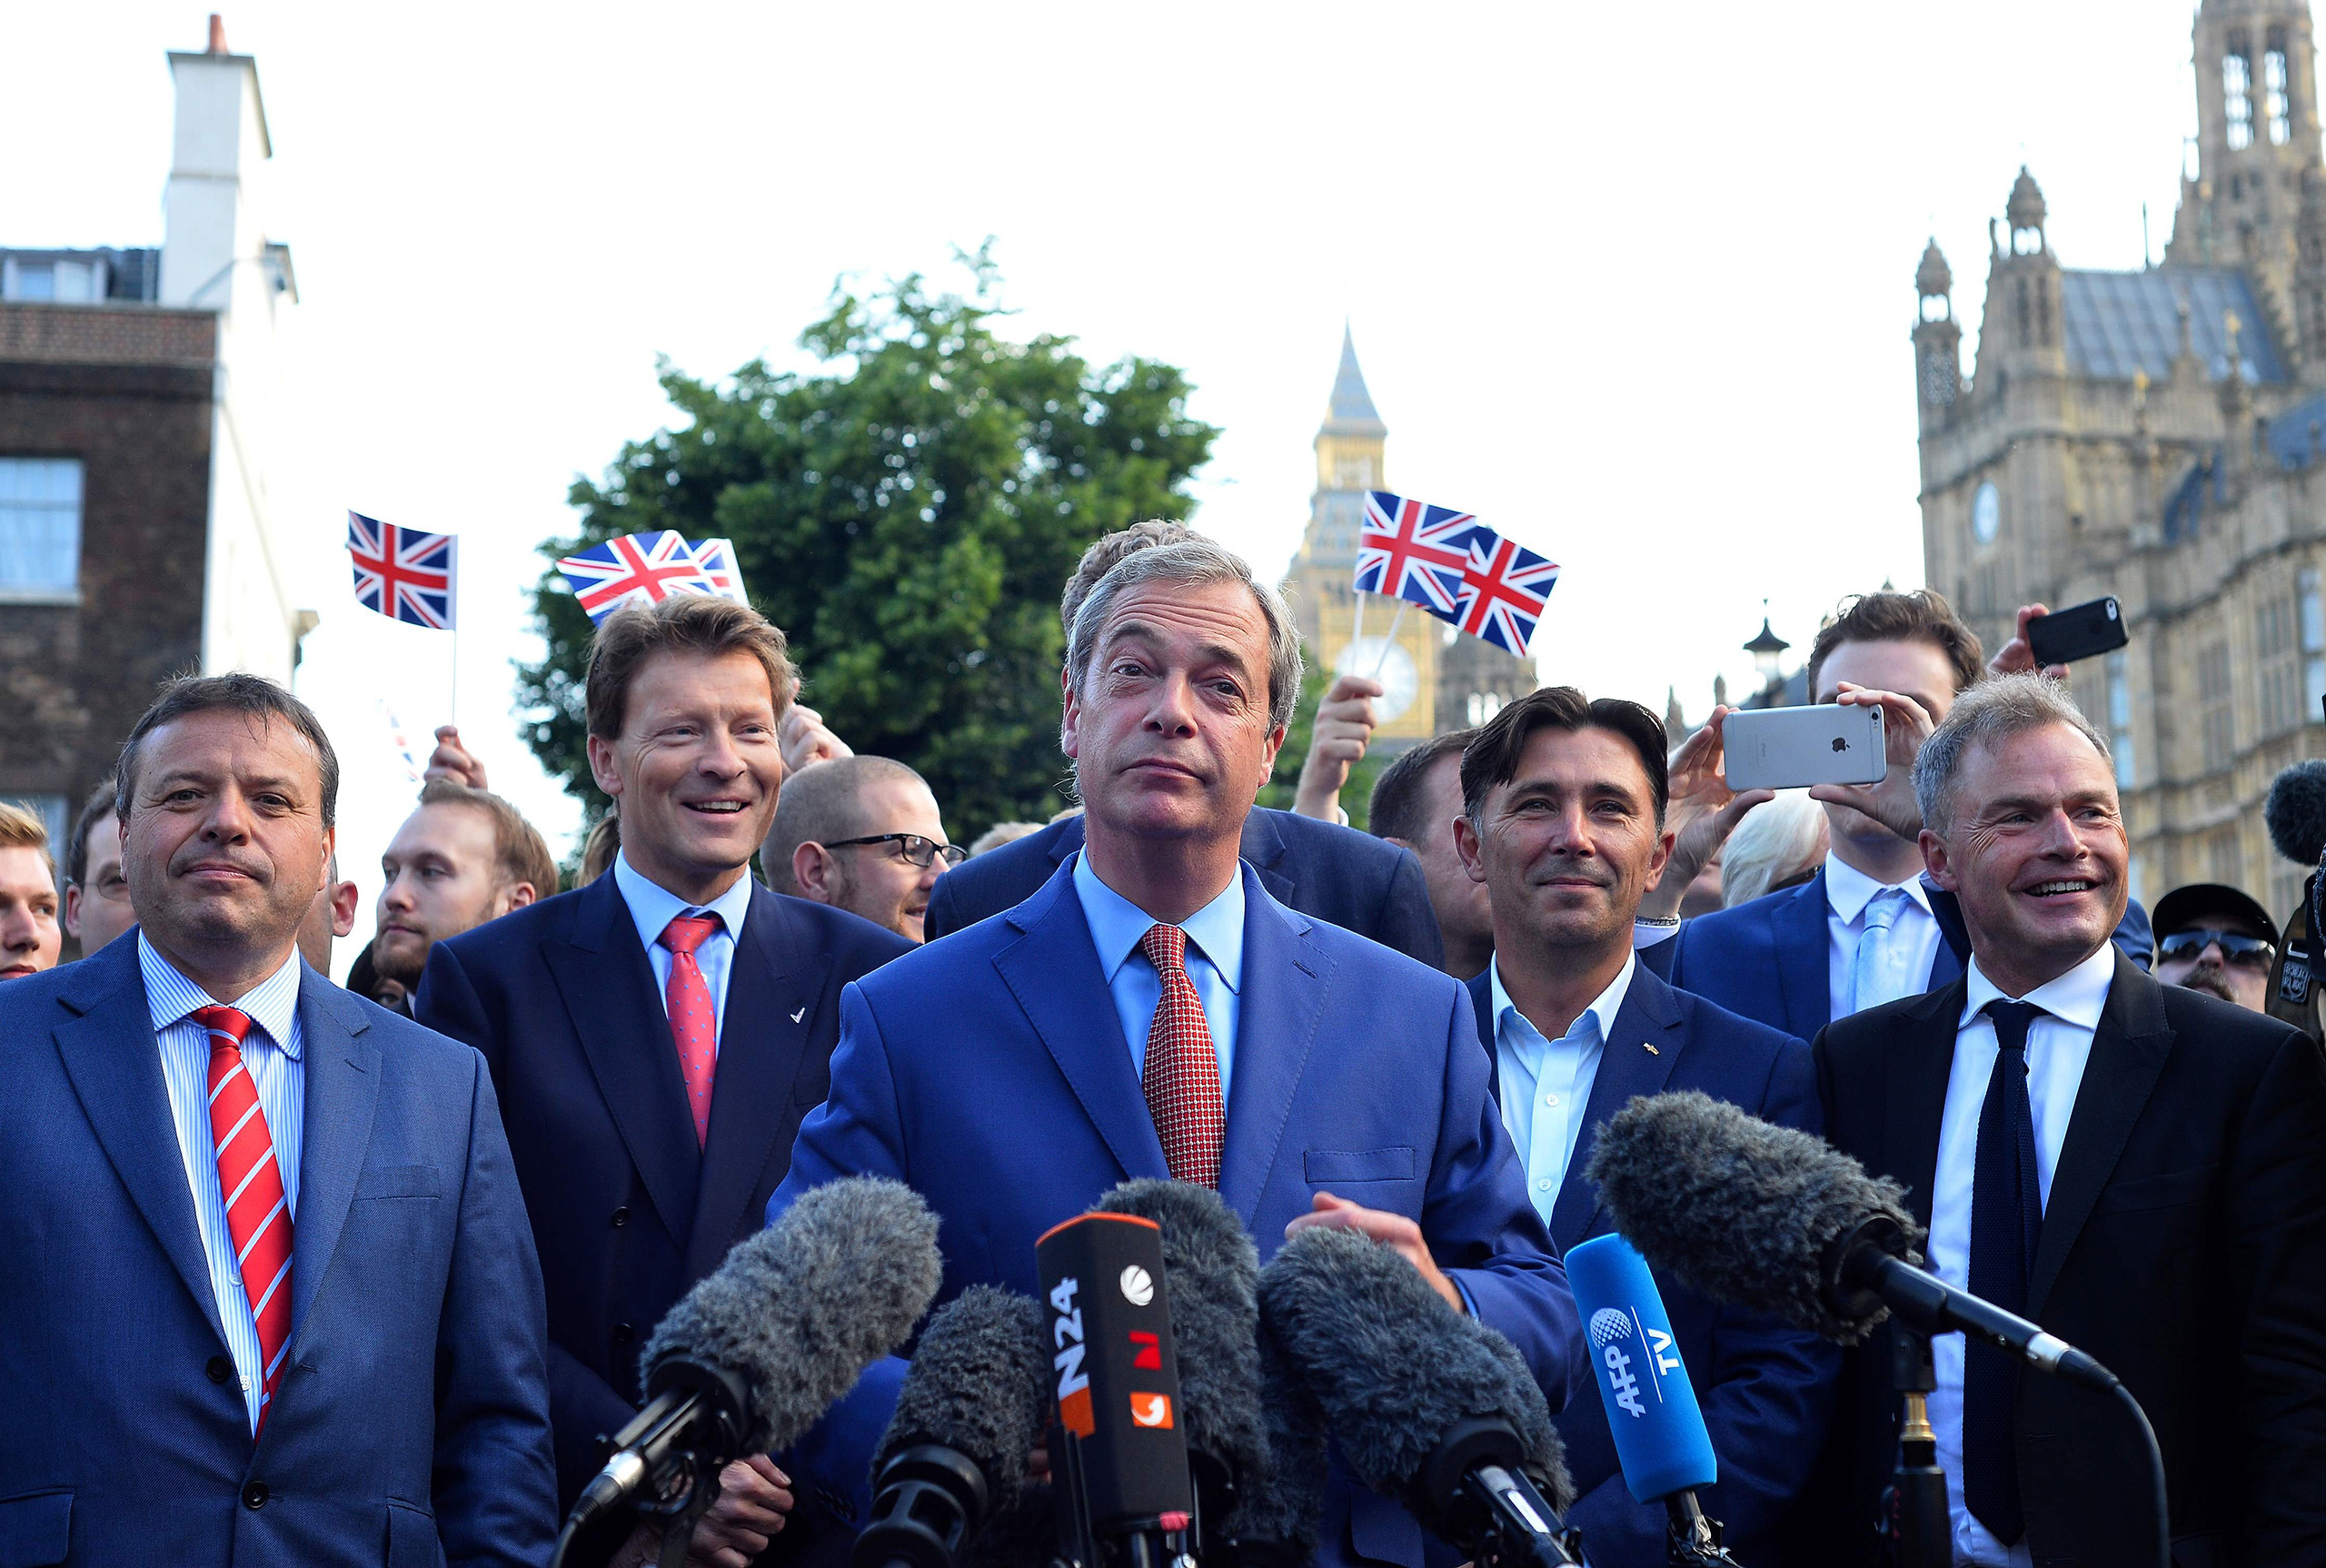 Leader of the United Kingdom Independence Party (UKIP), Nigel Farage, speaks during a press conference after Britain has voted to leave the European Union in central London on June 24, 2016.